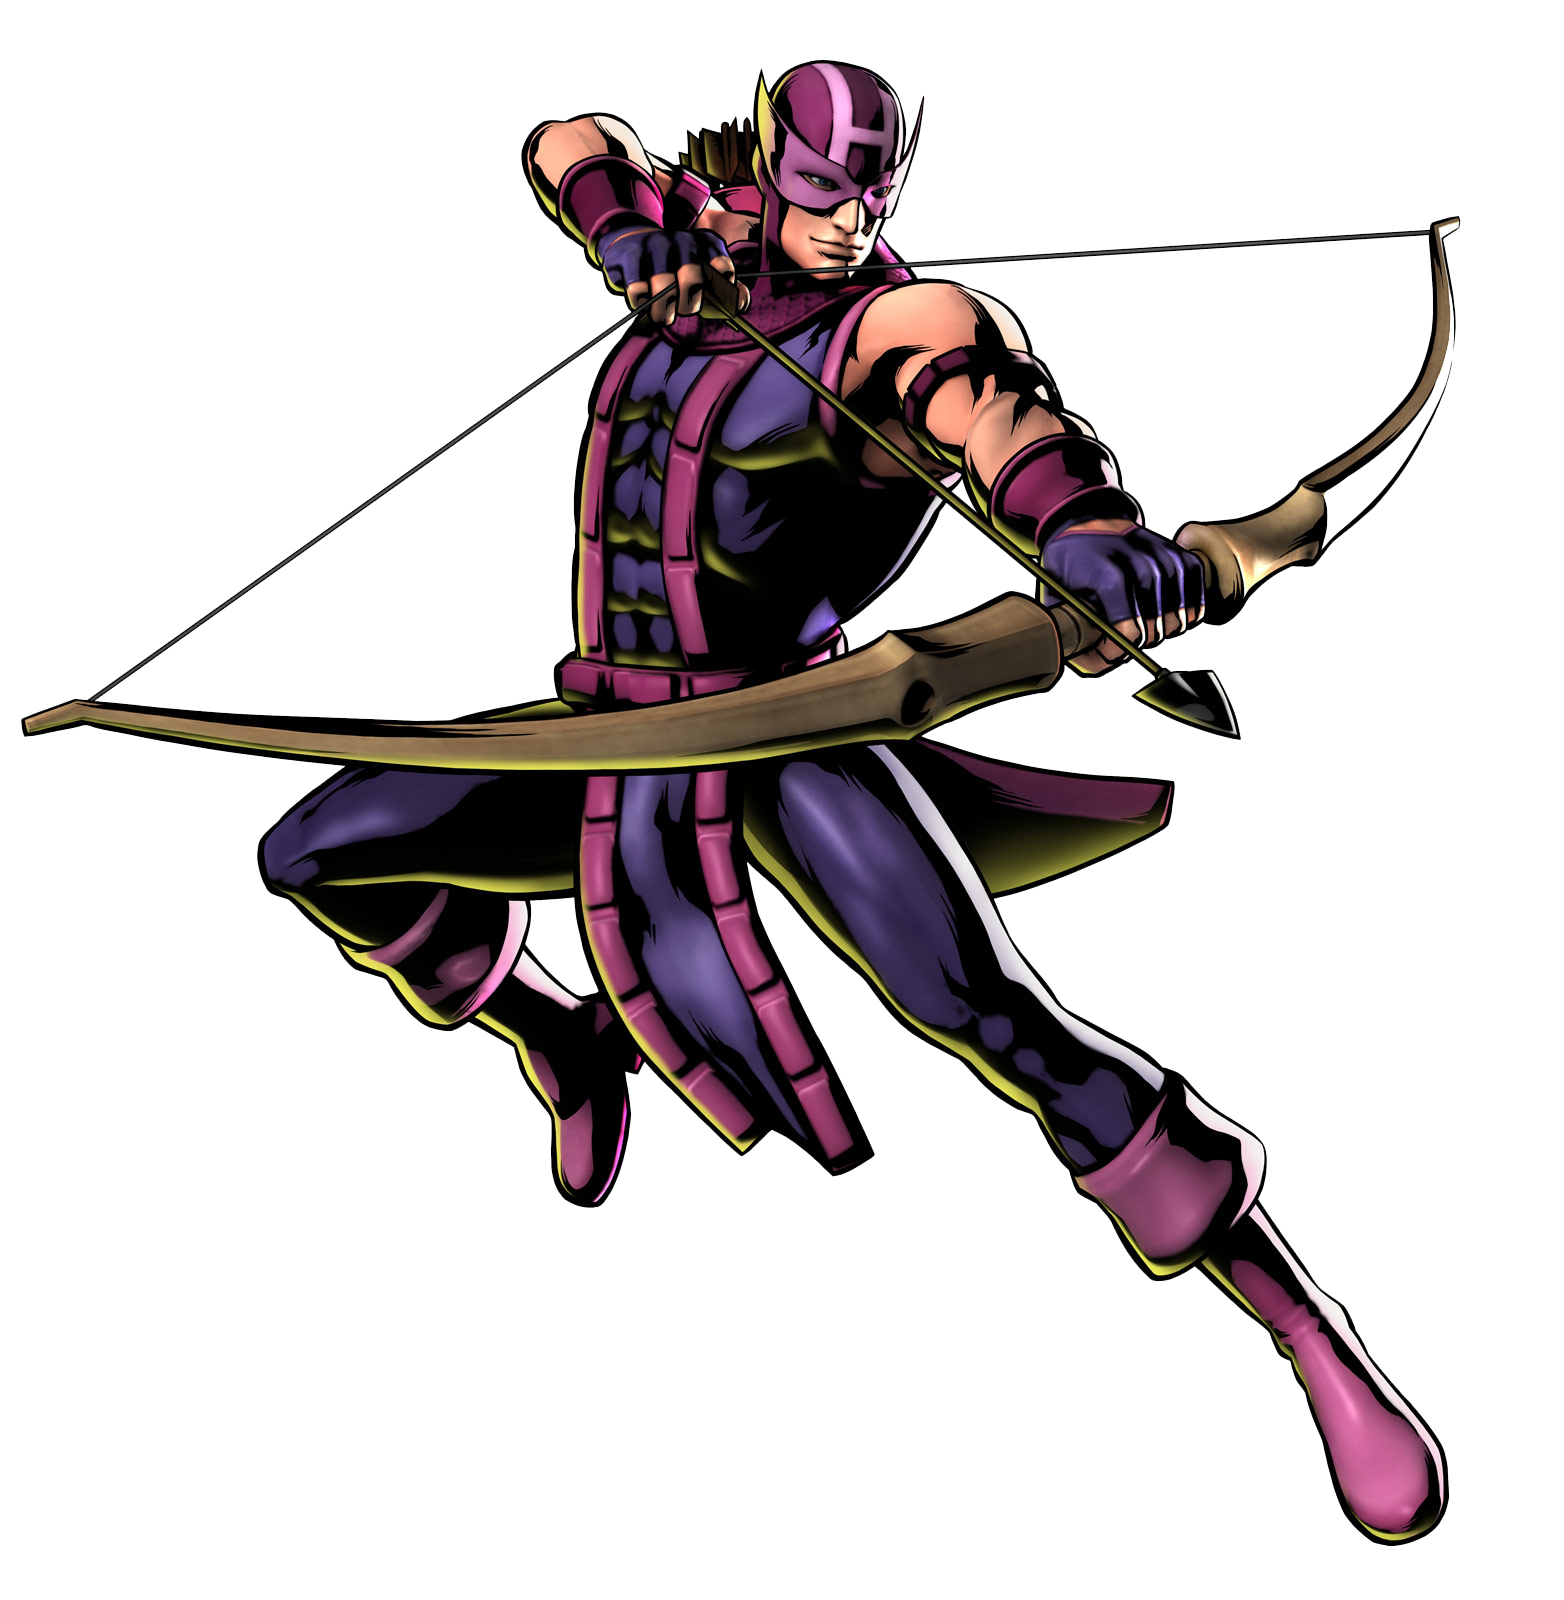 PNG File Name: Hawkeye PNG Pic Dimension: 1564x1600. Image Type: .png.  Posted on: Sep 3rd, 2016. Category: Fictional Characters Tags: Hawkeye - Hawkeye PNG